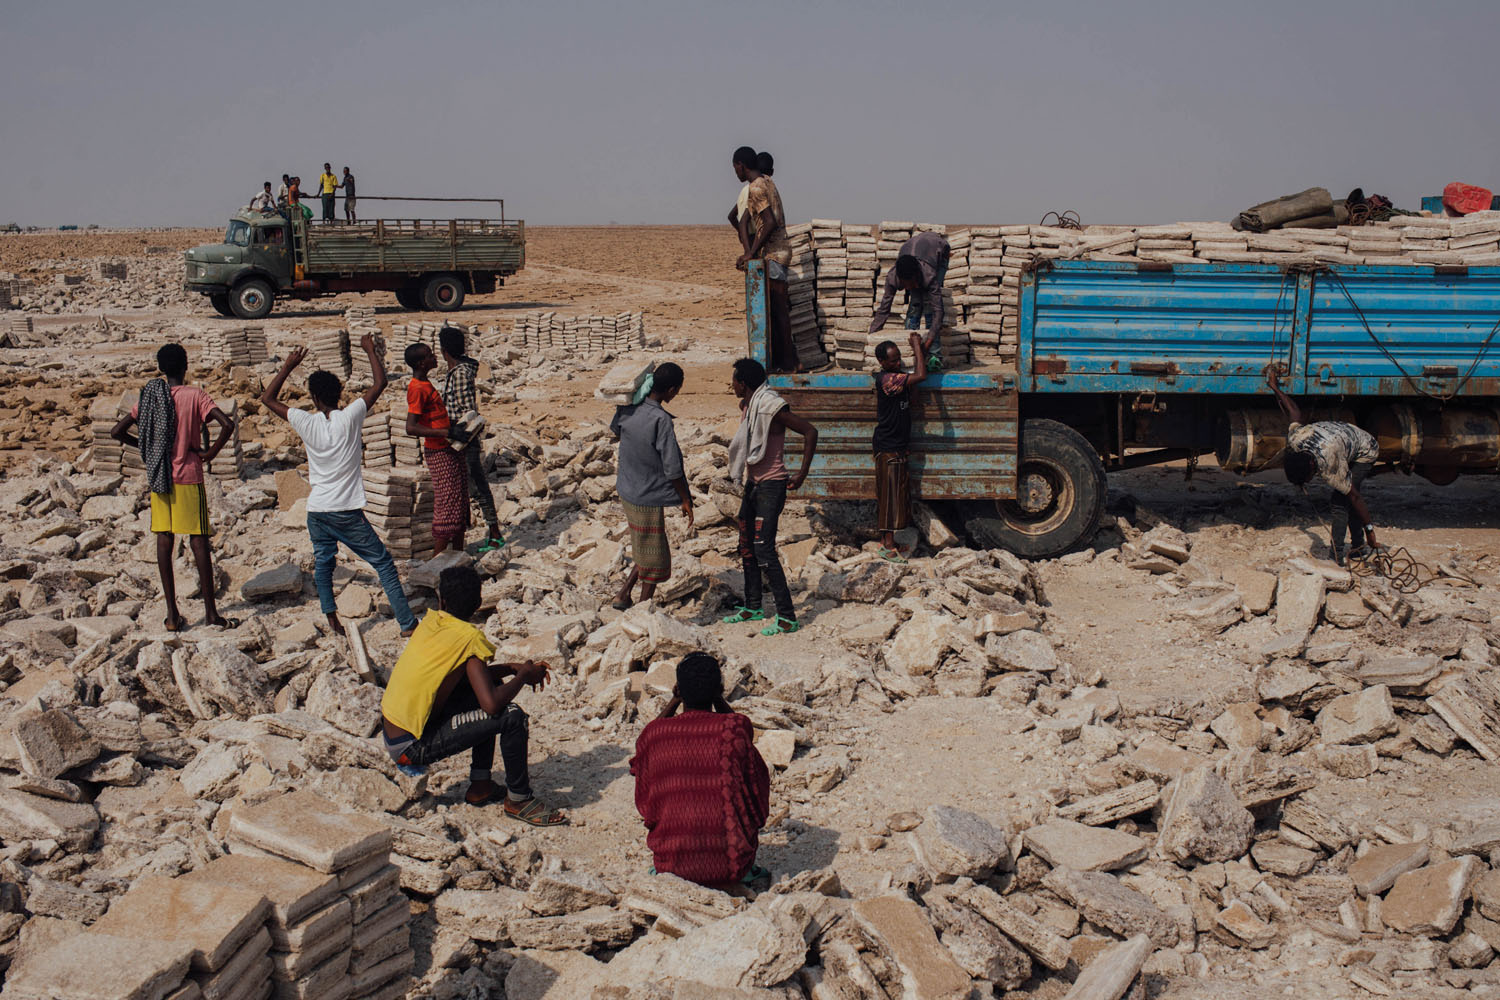 Miners load a truck with salt bricks to be transported to the nearest trading village. In the harsh conditions of the Danakil Depression, salt mining is one of the only sources of income outside the tourism industry. Photograph by Alex Pritz.